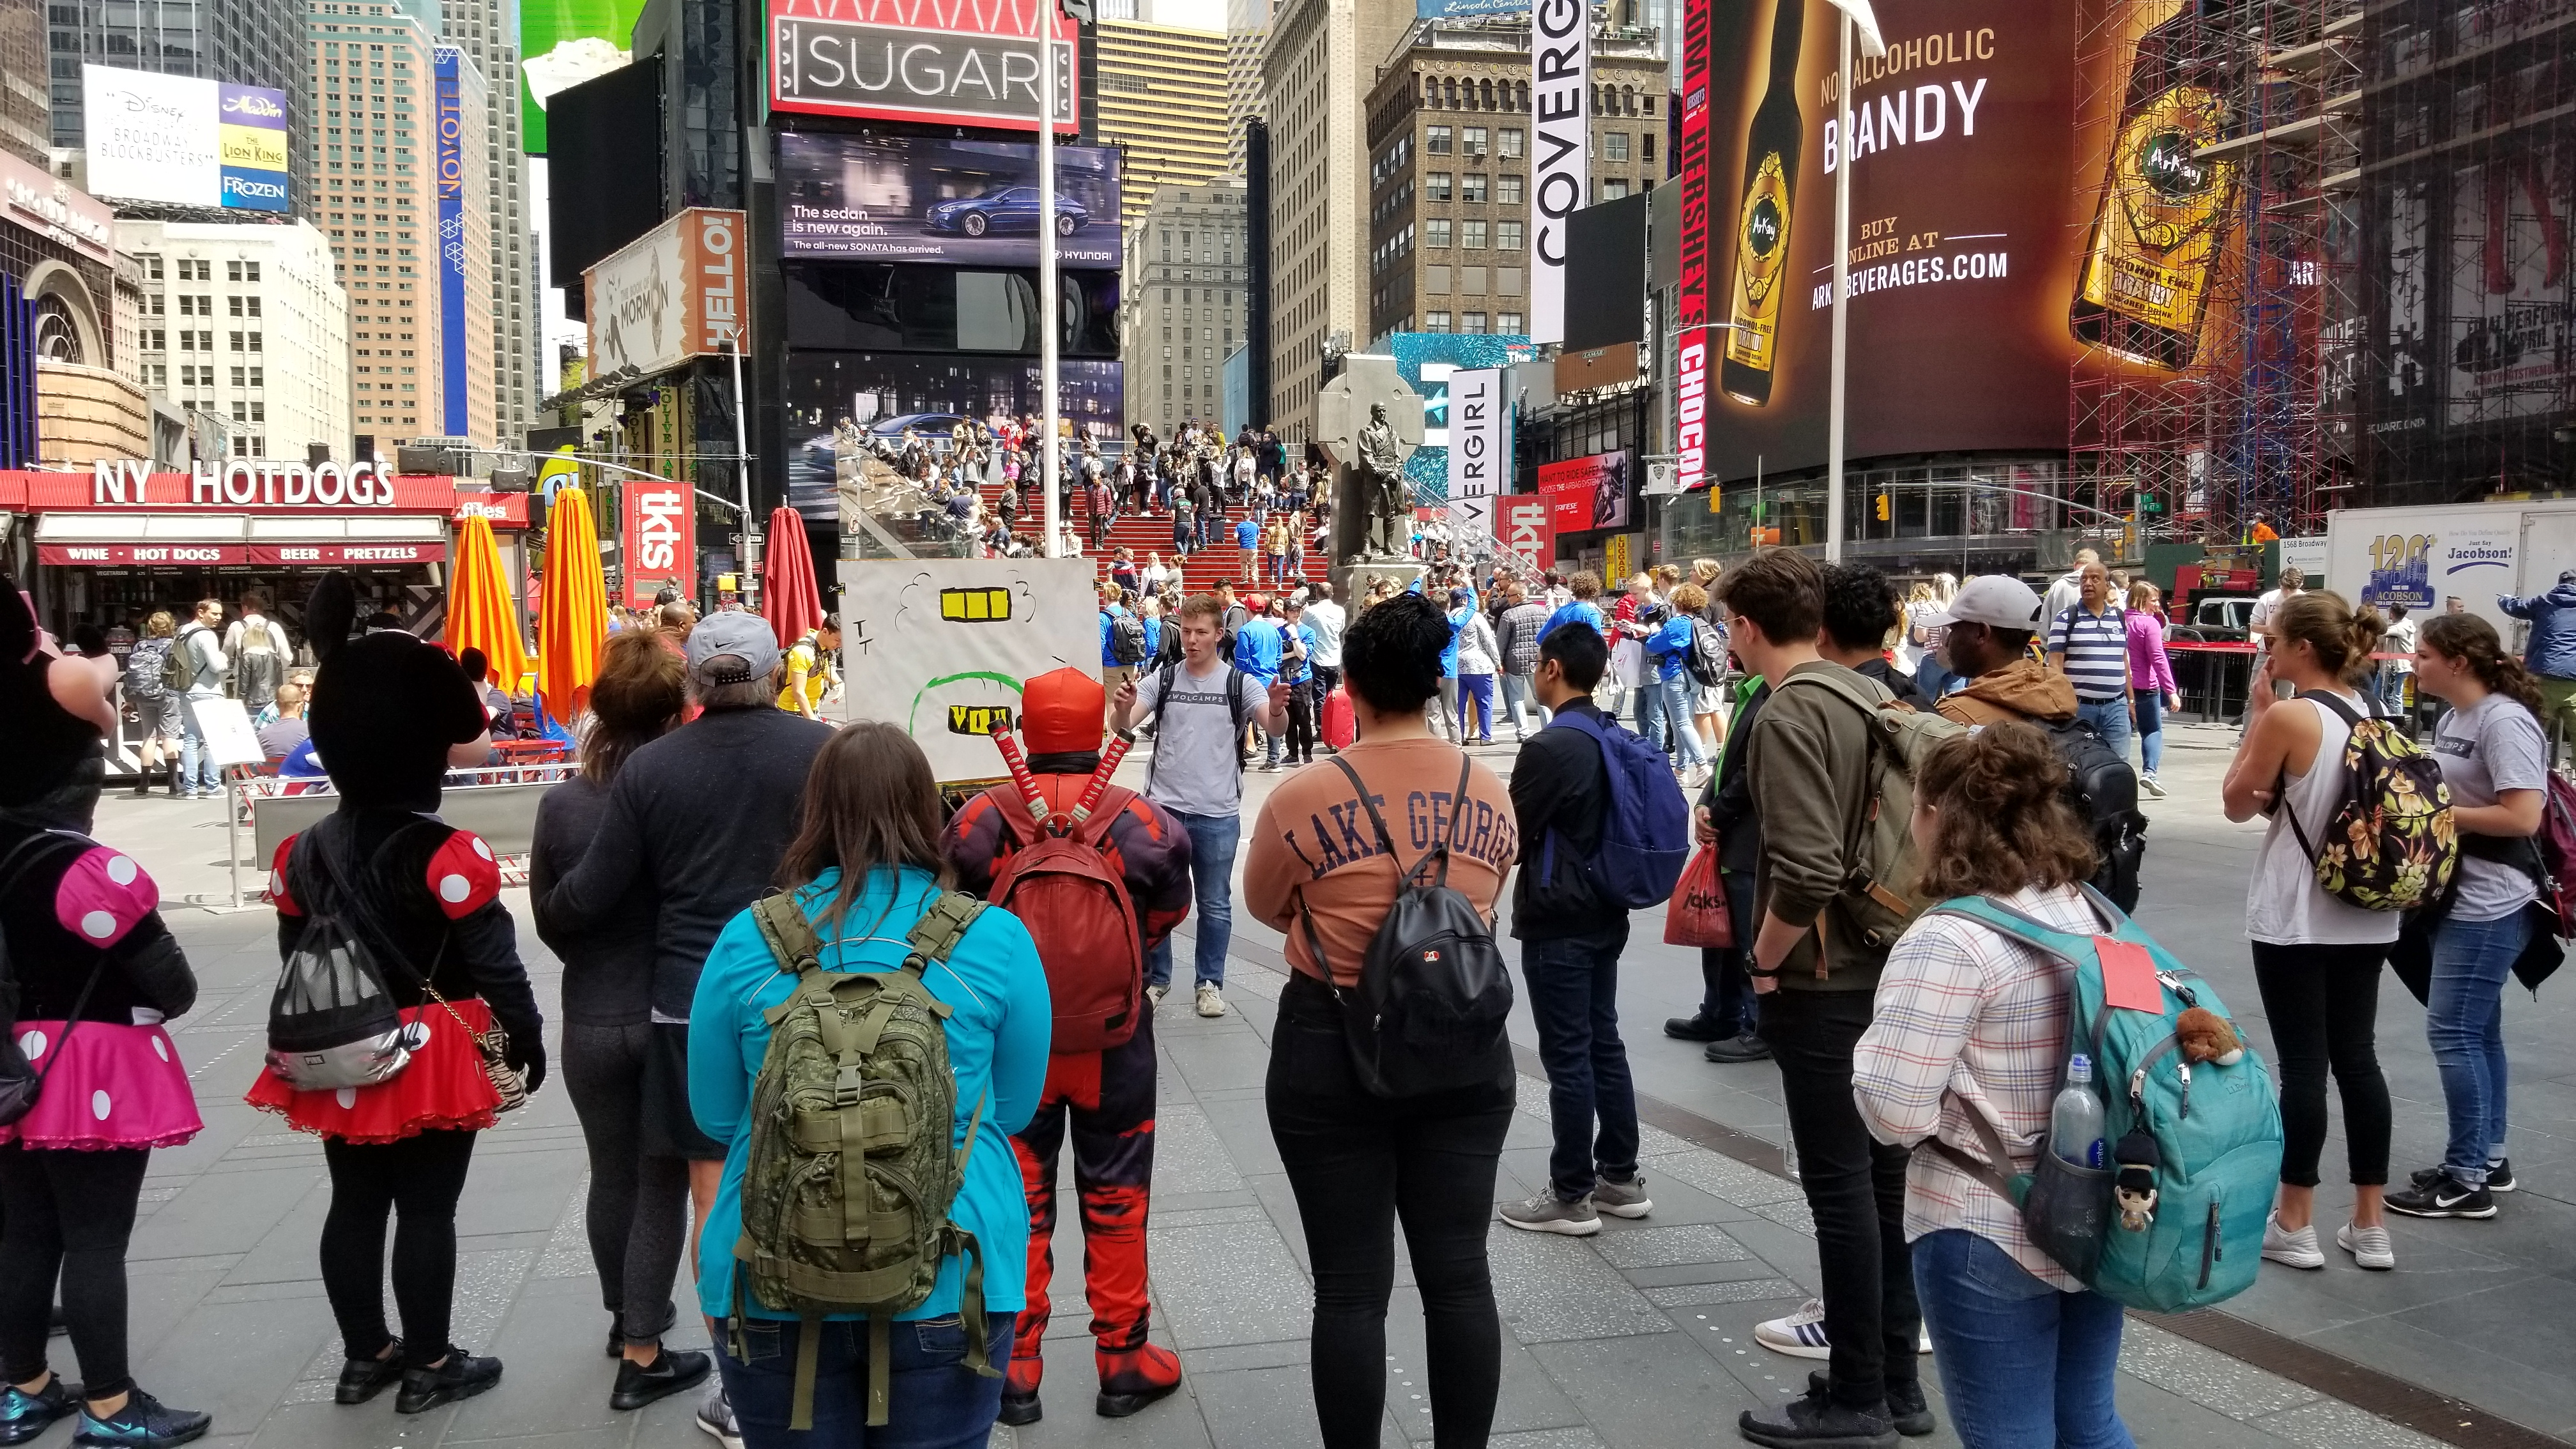 You don't see this everyday. Ben is preaching the gospel in Times Square, and 2 Mini Mouses and 1 Deadpool is listening (and a bunch of regular humans too).